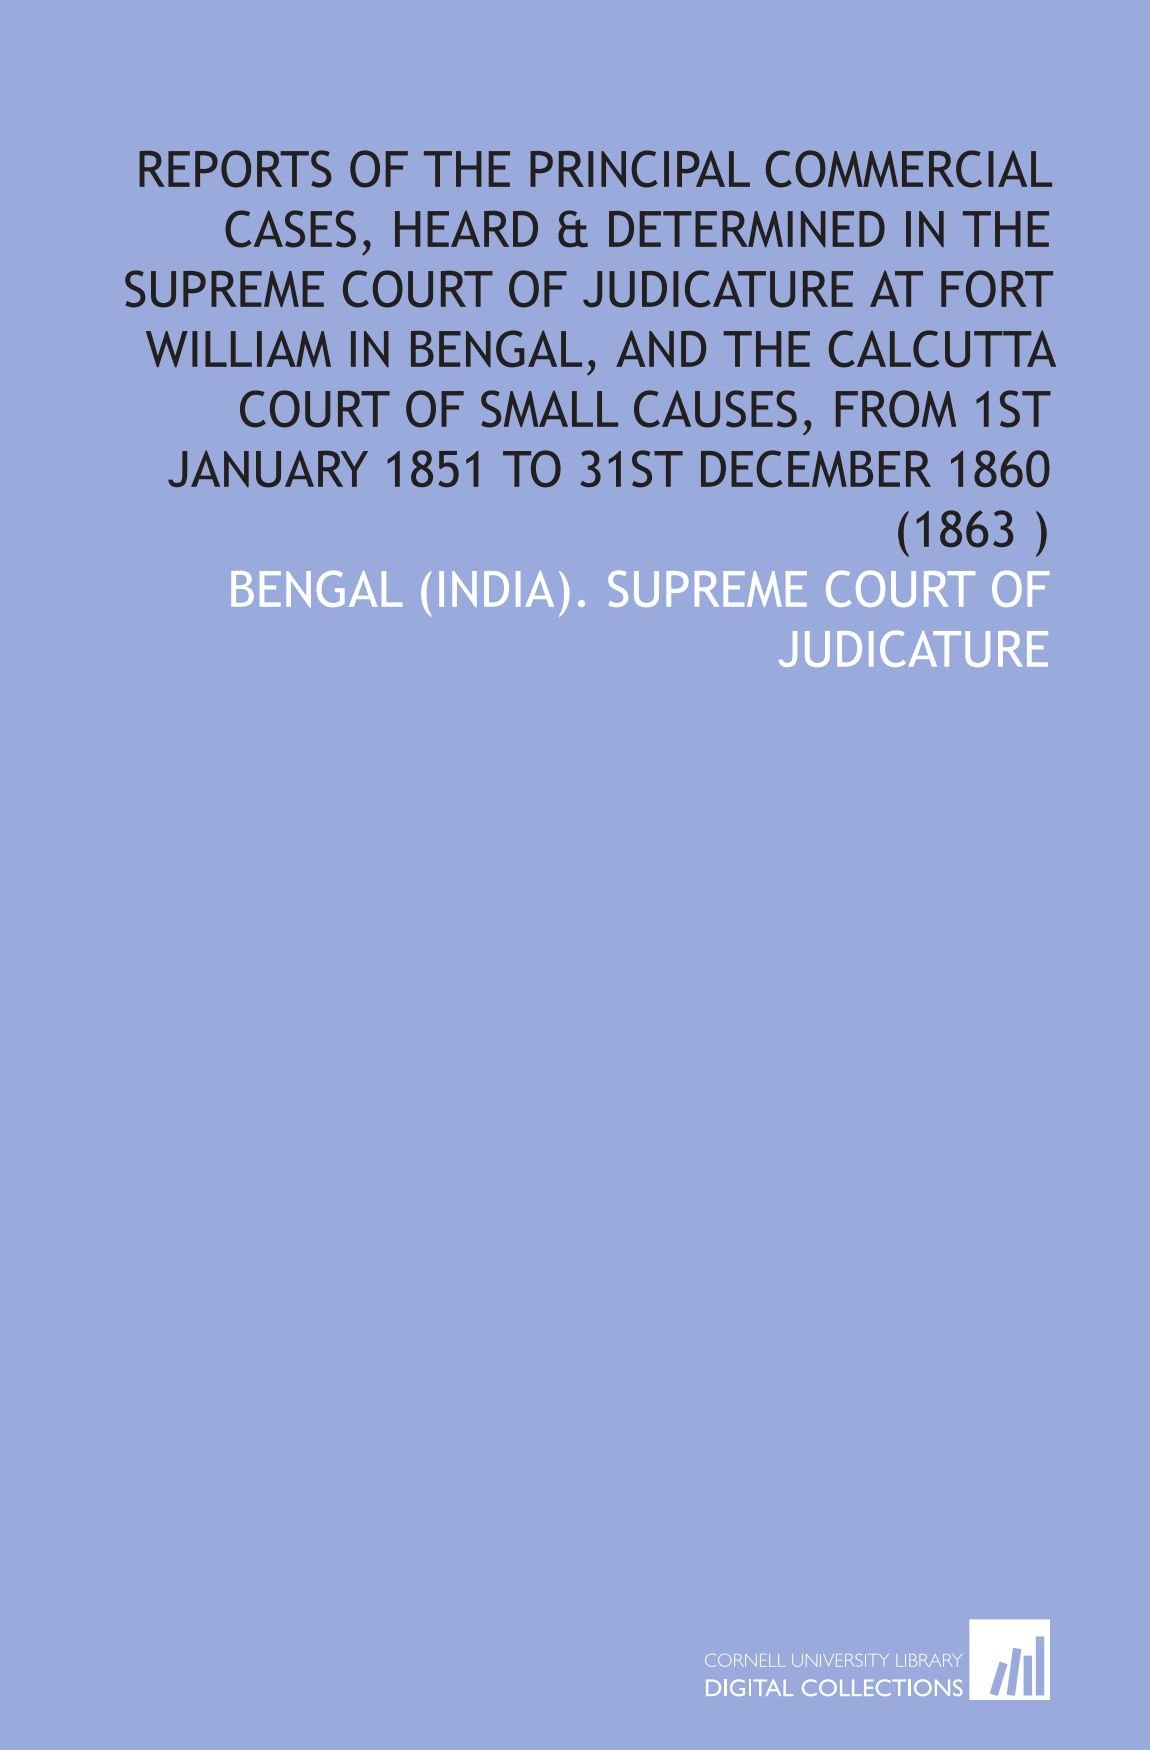 Download Reports of the principal commercial cases, heard & determined in the Supreme court of judicature at Fort William in Bengal, and the Calcutta Court of ... January 1851 to 31st December 1860 (1863 ) pdf epub